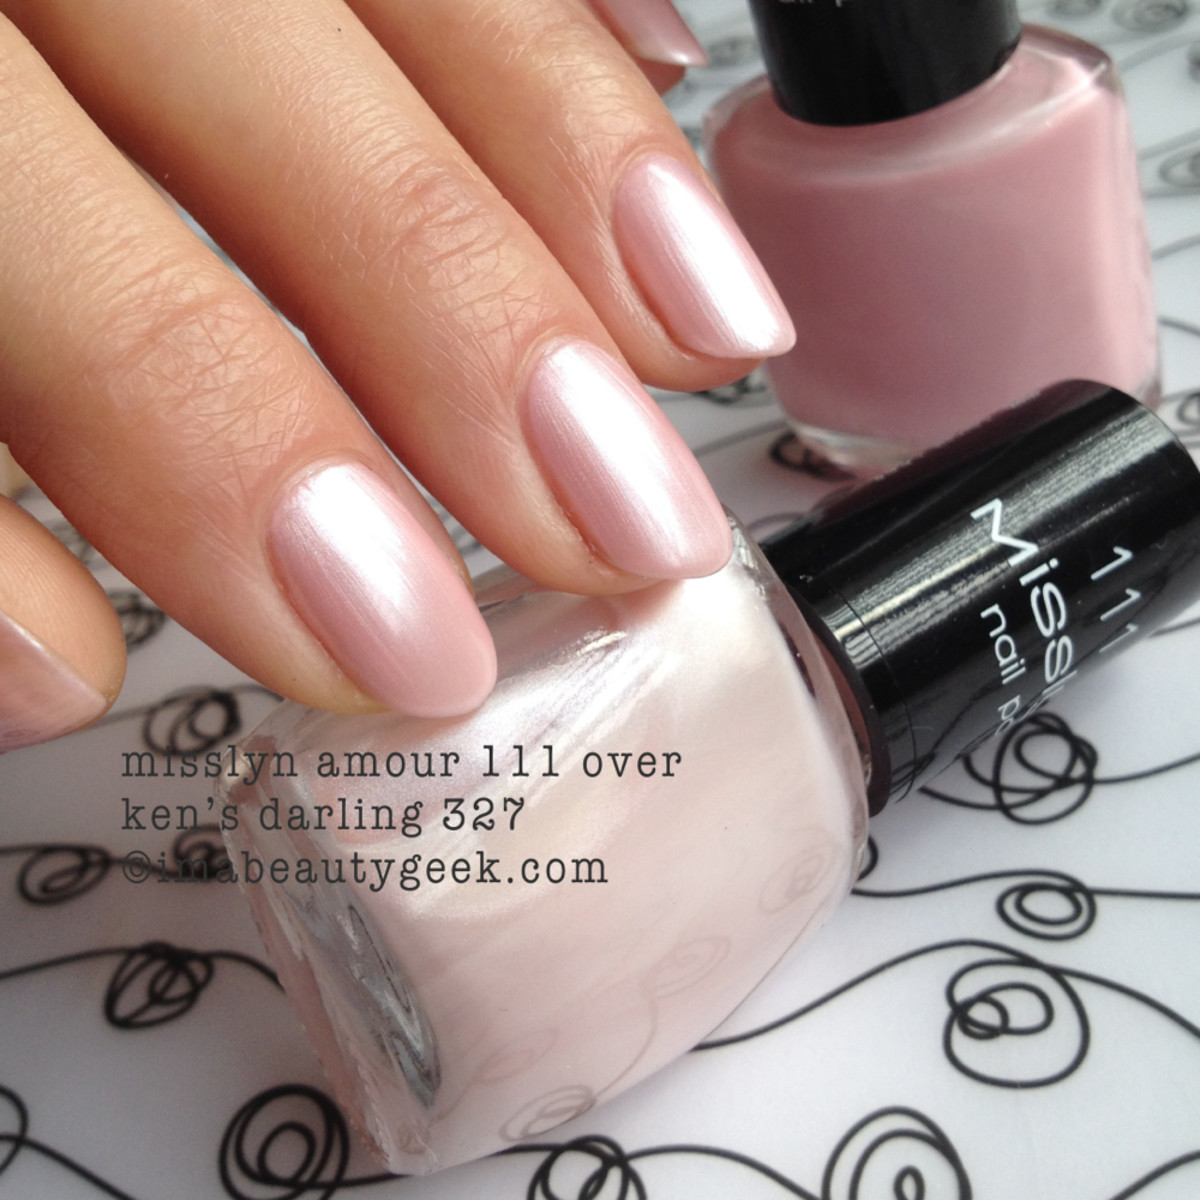 misslyn amour 111 nail polish